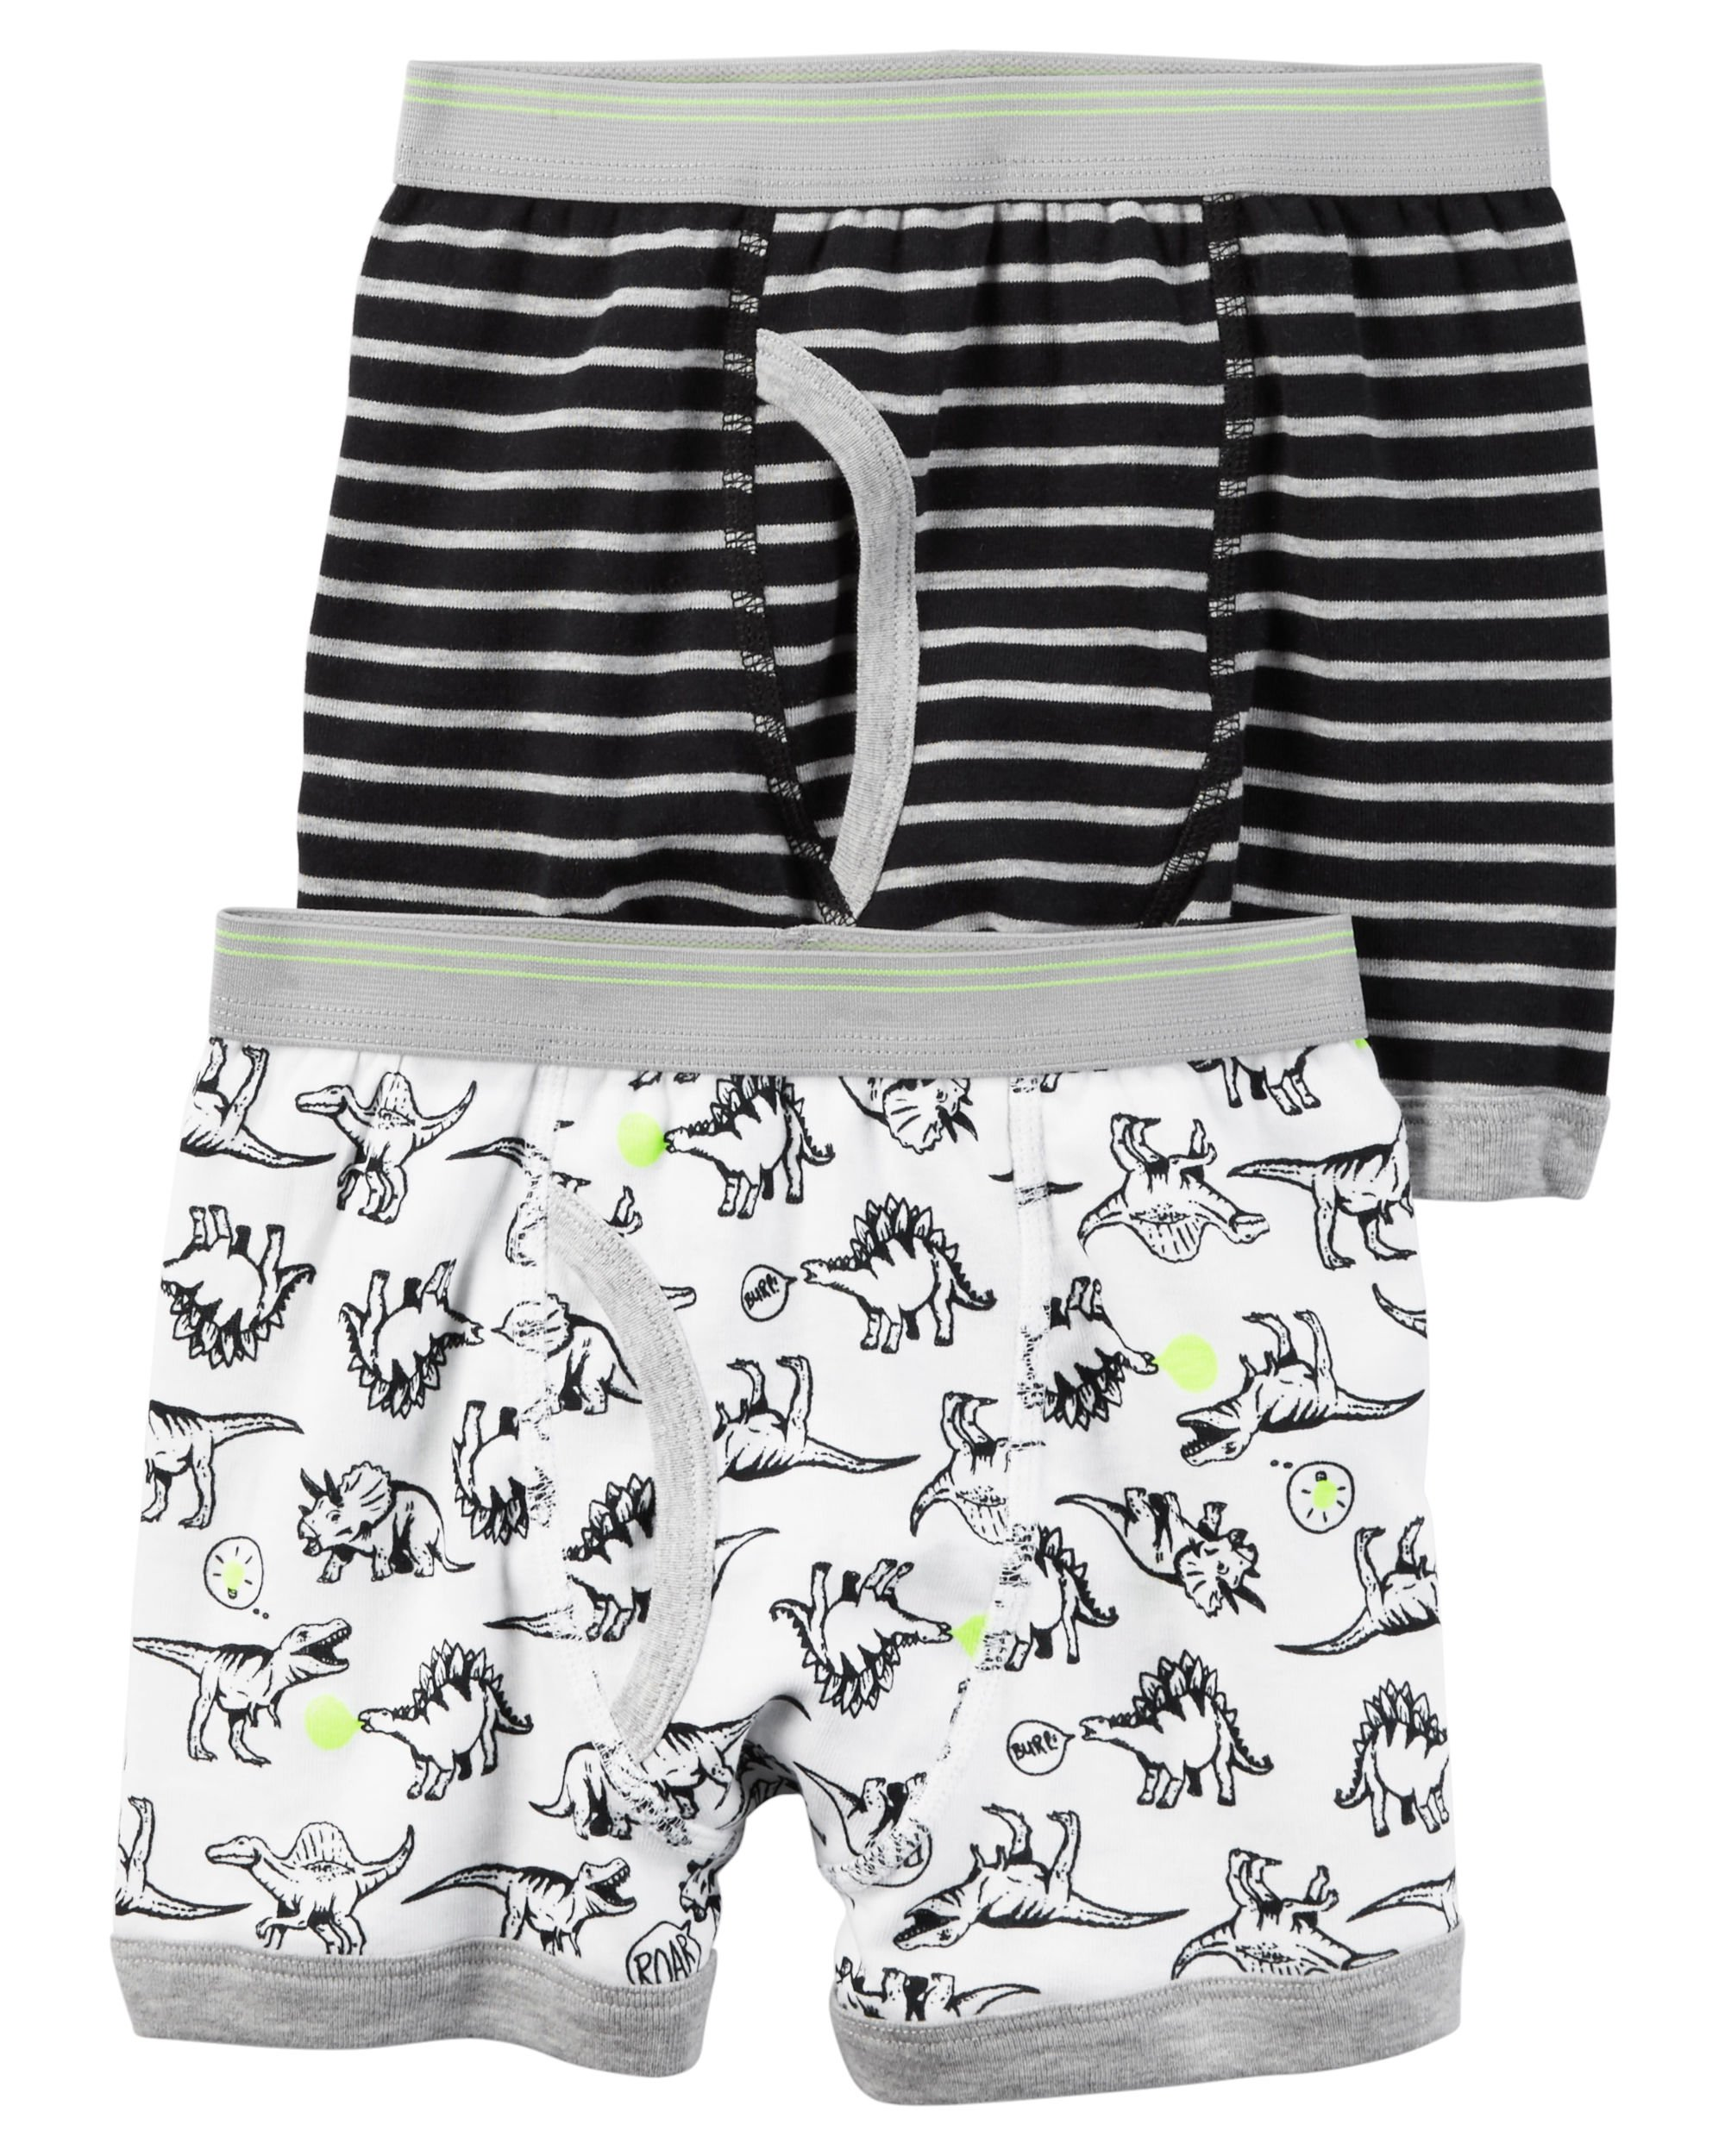 2 Pack Carters Boys Boxer Brief